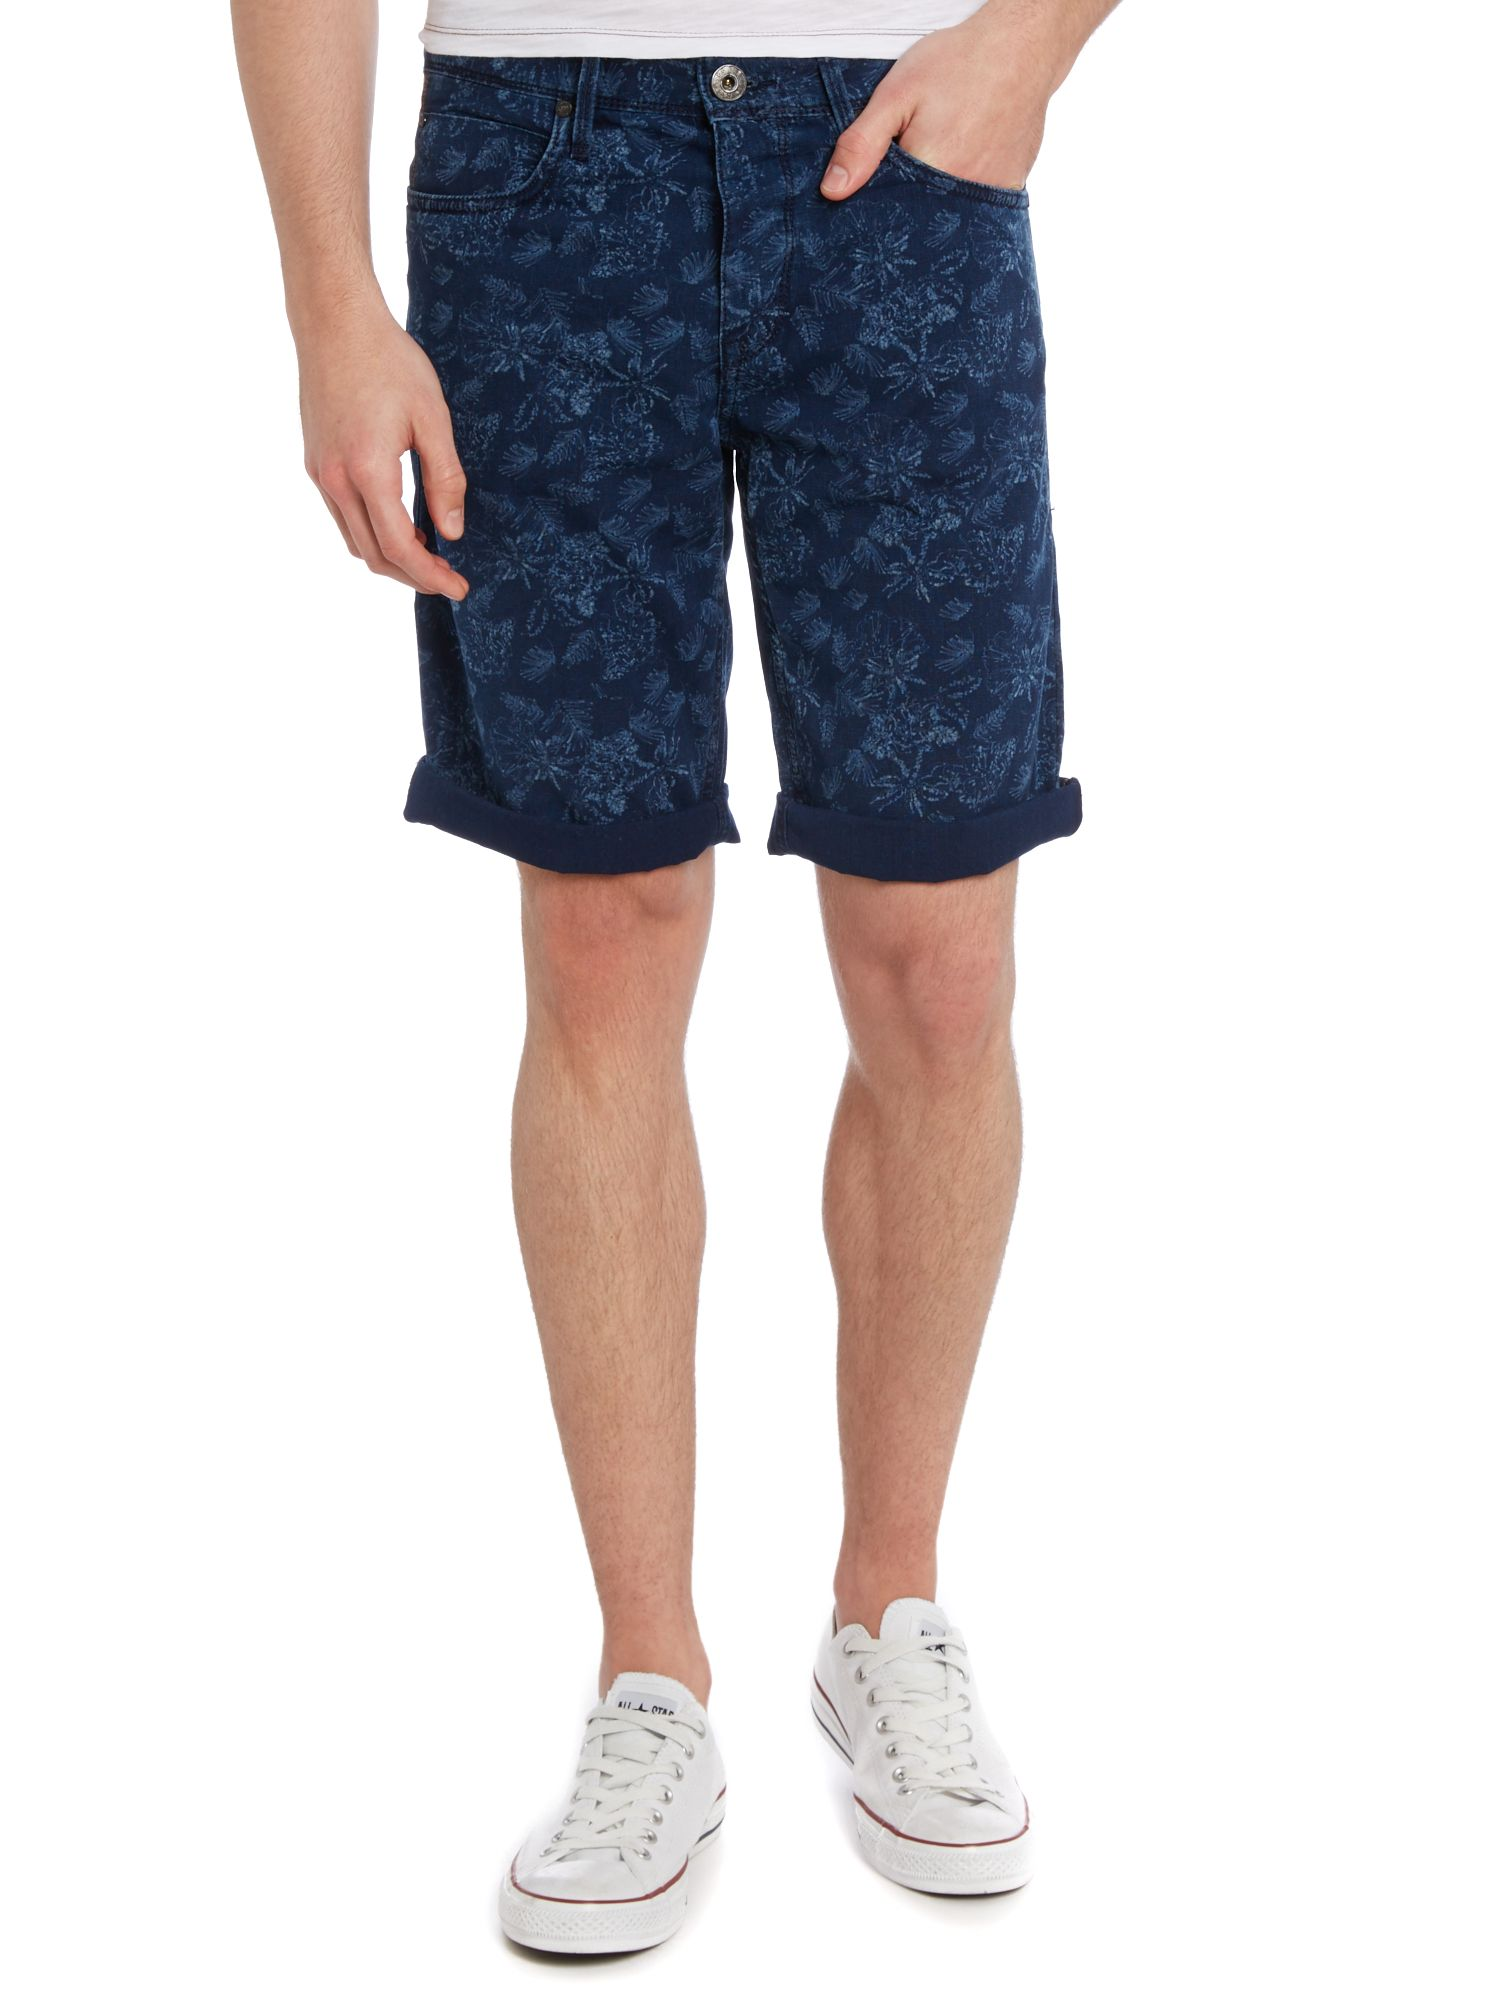 Orange 24 milano wash printed shorts